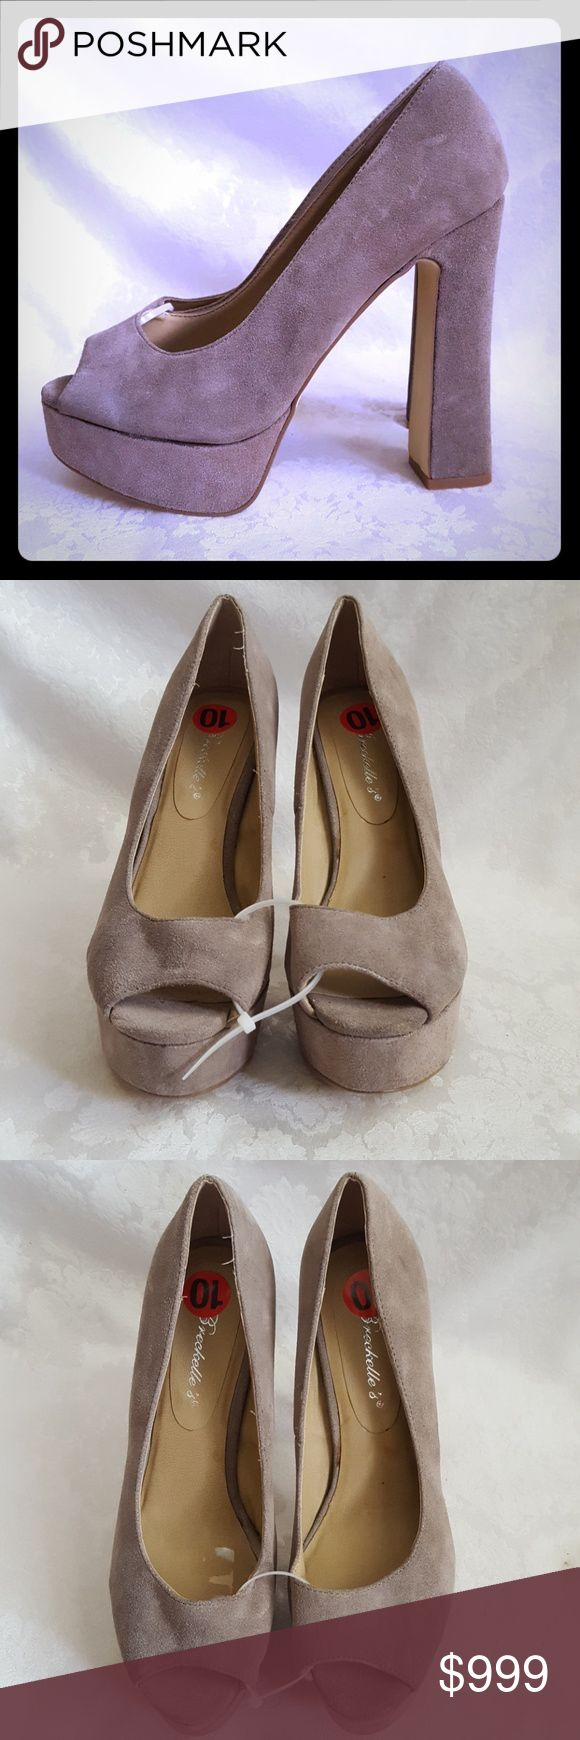 """🌻SALE 🌻 Taupe Suede Open Toe Platform Heels Check out my other listings - 100's of 👠shoes👠, 👢boots👢 and 👜bags👜. Bundle 2 or more and save money! 💲💵💲  New - never worn. Breckelle's suede leather open toe shoes with 5 1/2"""" heel and 1 1/2"""" platform. Style is """"Pandy"""". Color is tan taupe.  Excellent condition. Small scuff at the bottom of heel from being stored. Not noticible. Smoke free and pet free home. Breckelles Shoes Heels"""